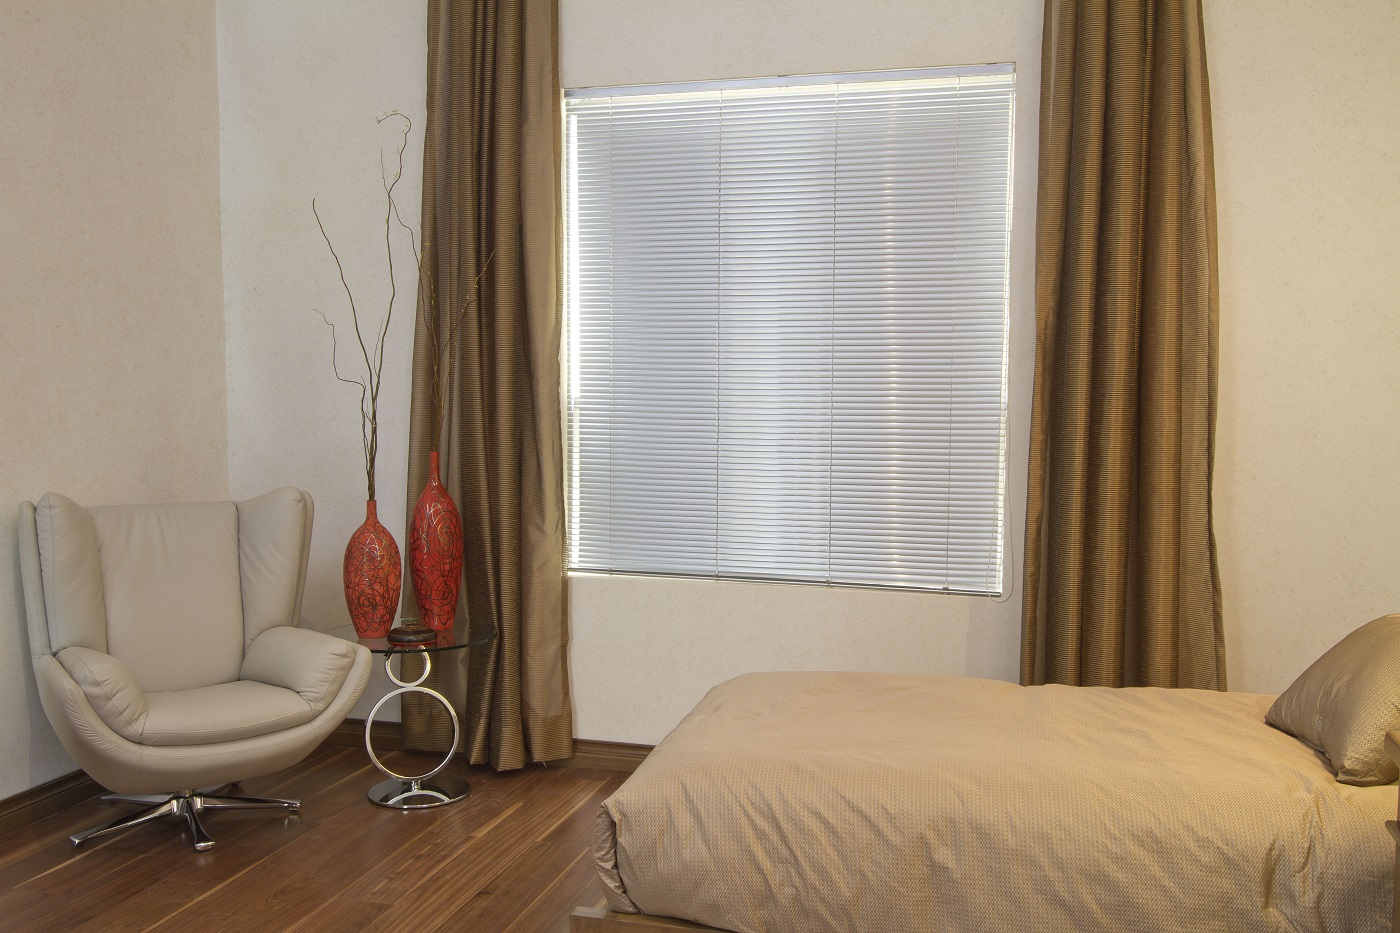 American Blinds  Grupo Alumart. Kitchencraft. Bookshelf Designs. Twin Wall Bed. Wheelchair Accessible Shower. Reclaimed Wood And Metal Coffee Table. Sidelight Shutters. Kallista. Farmhouse Dining Room Table